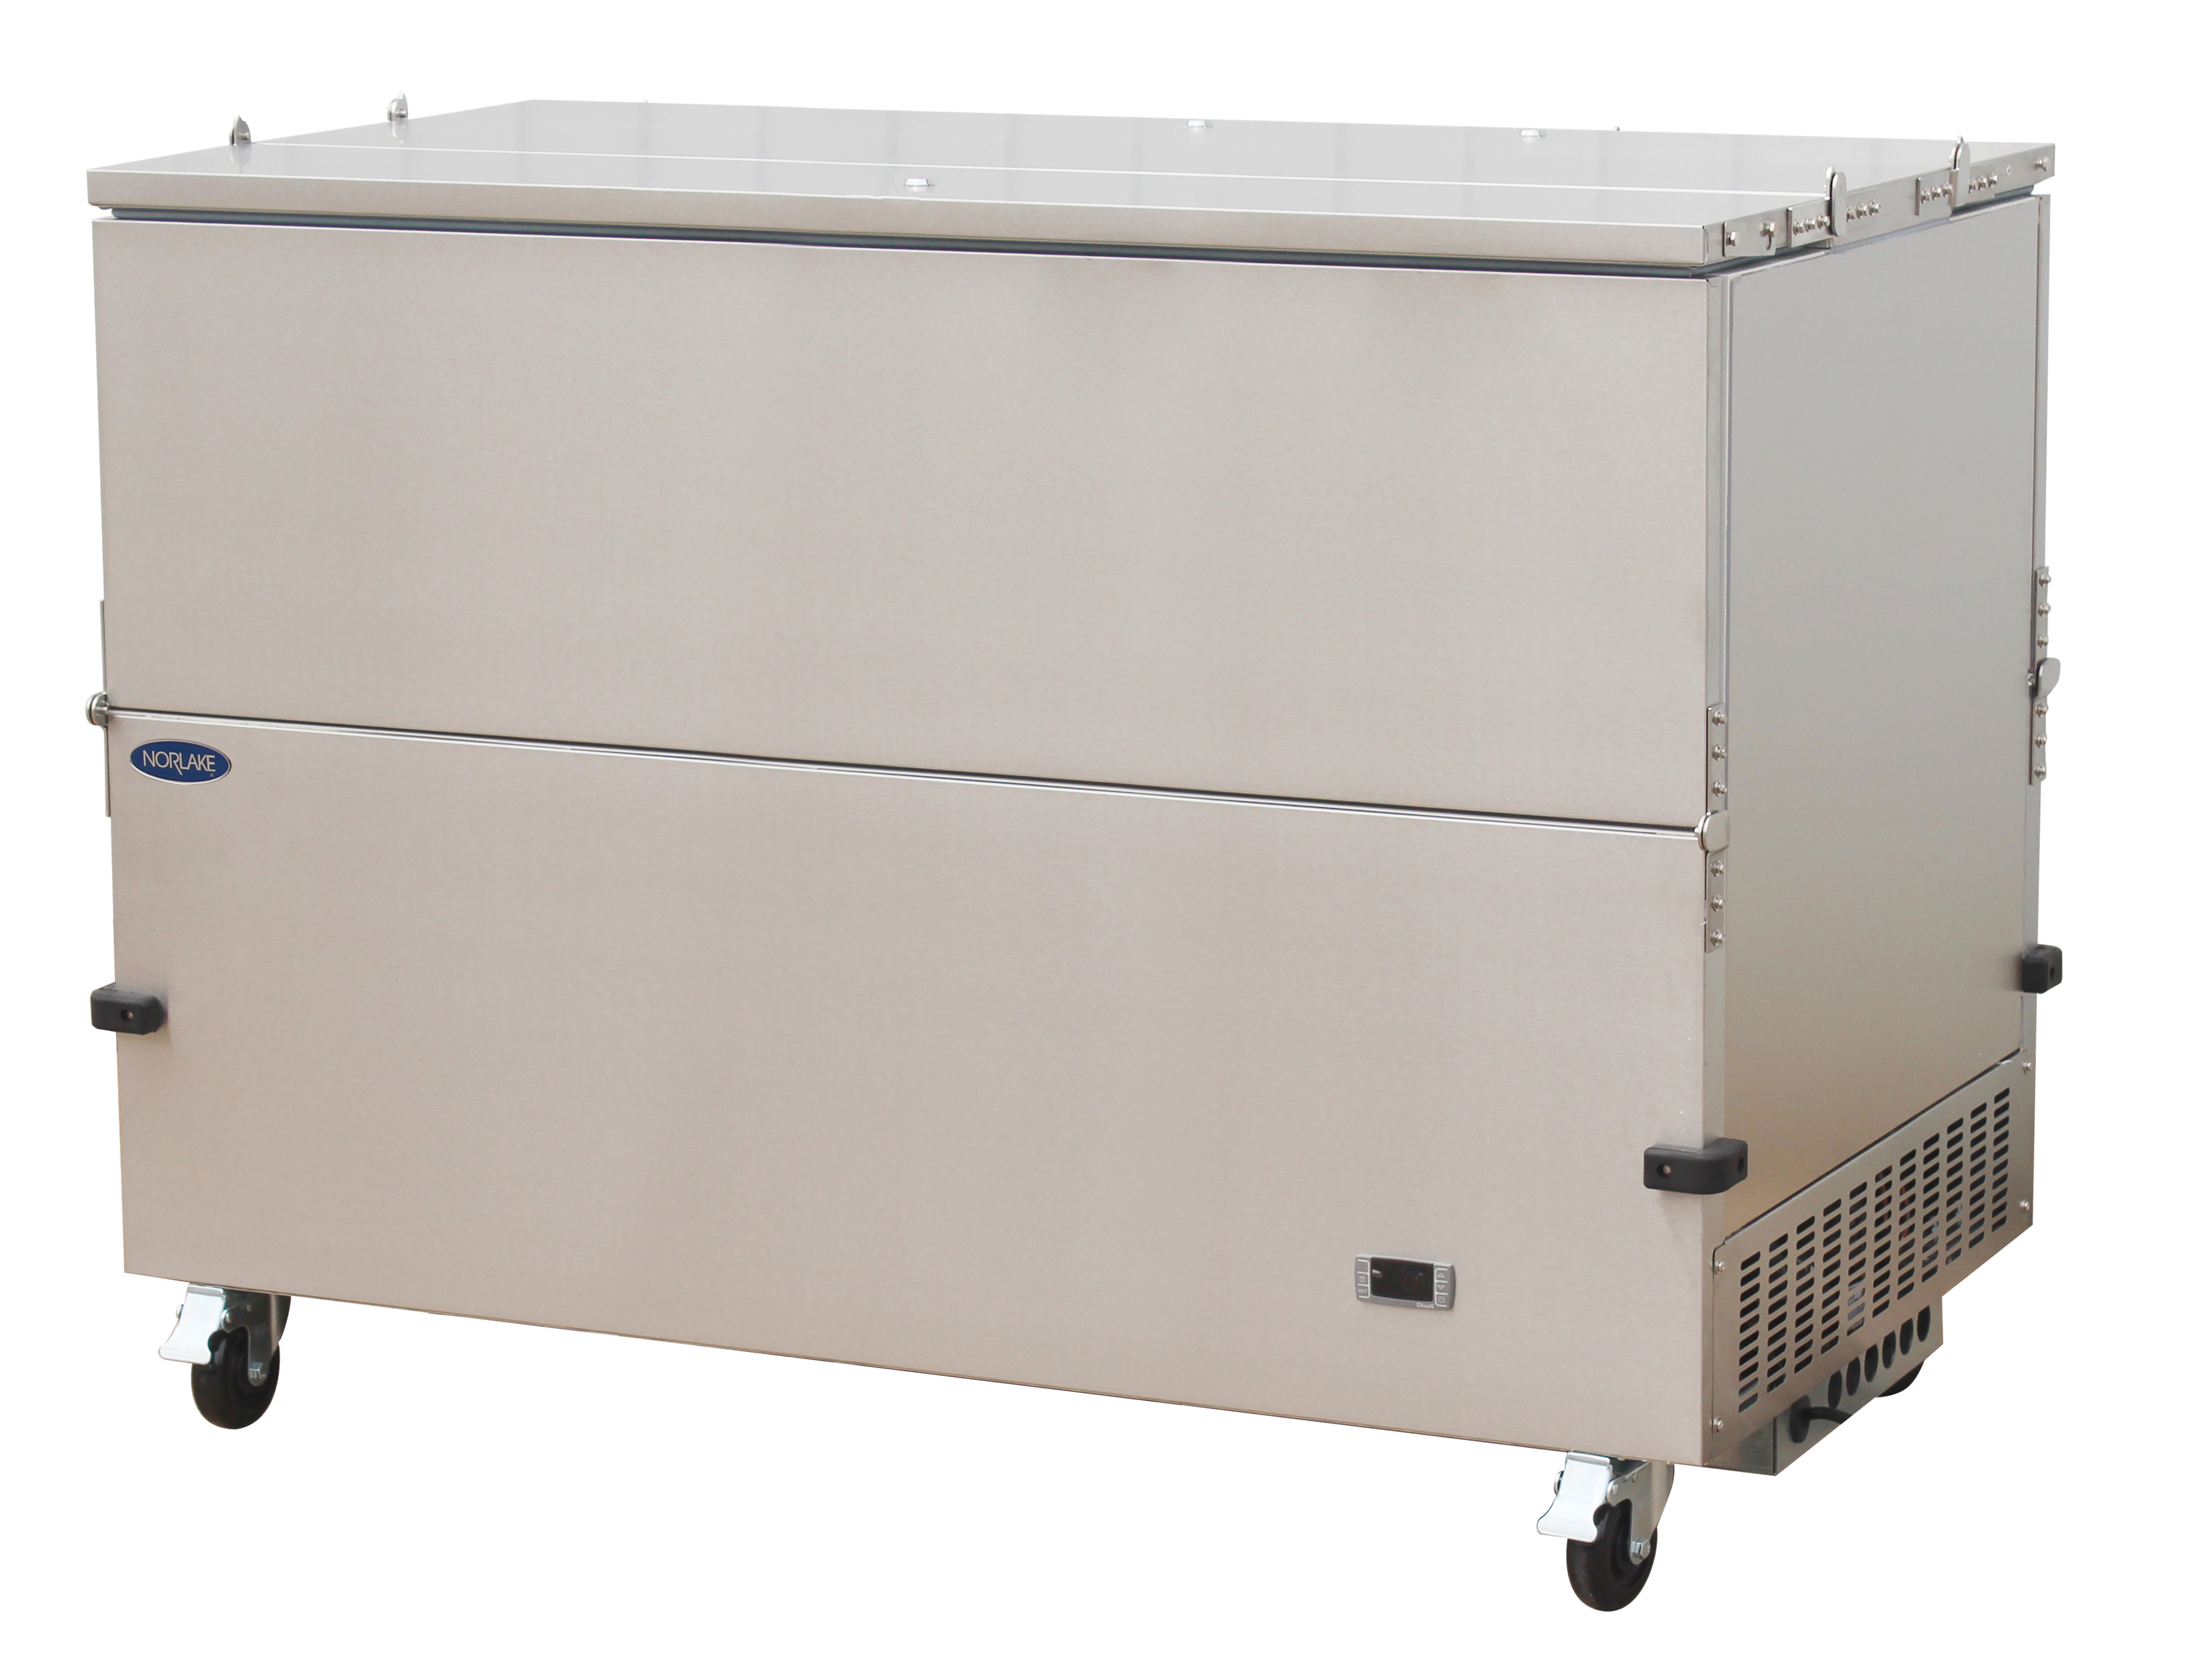 Nor-Lake NLMC16DS dual access - stainless steel exterior